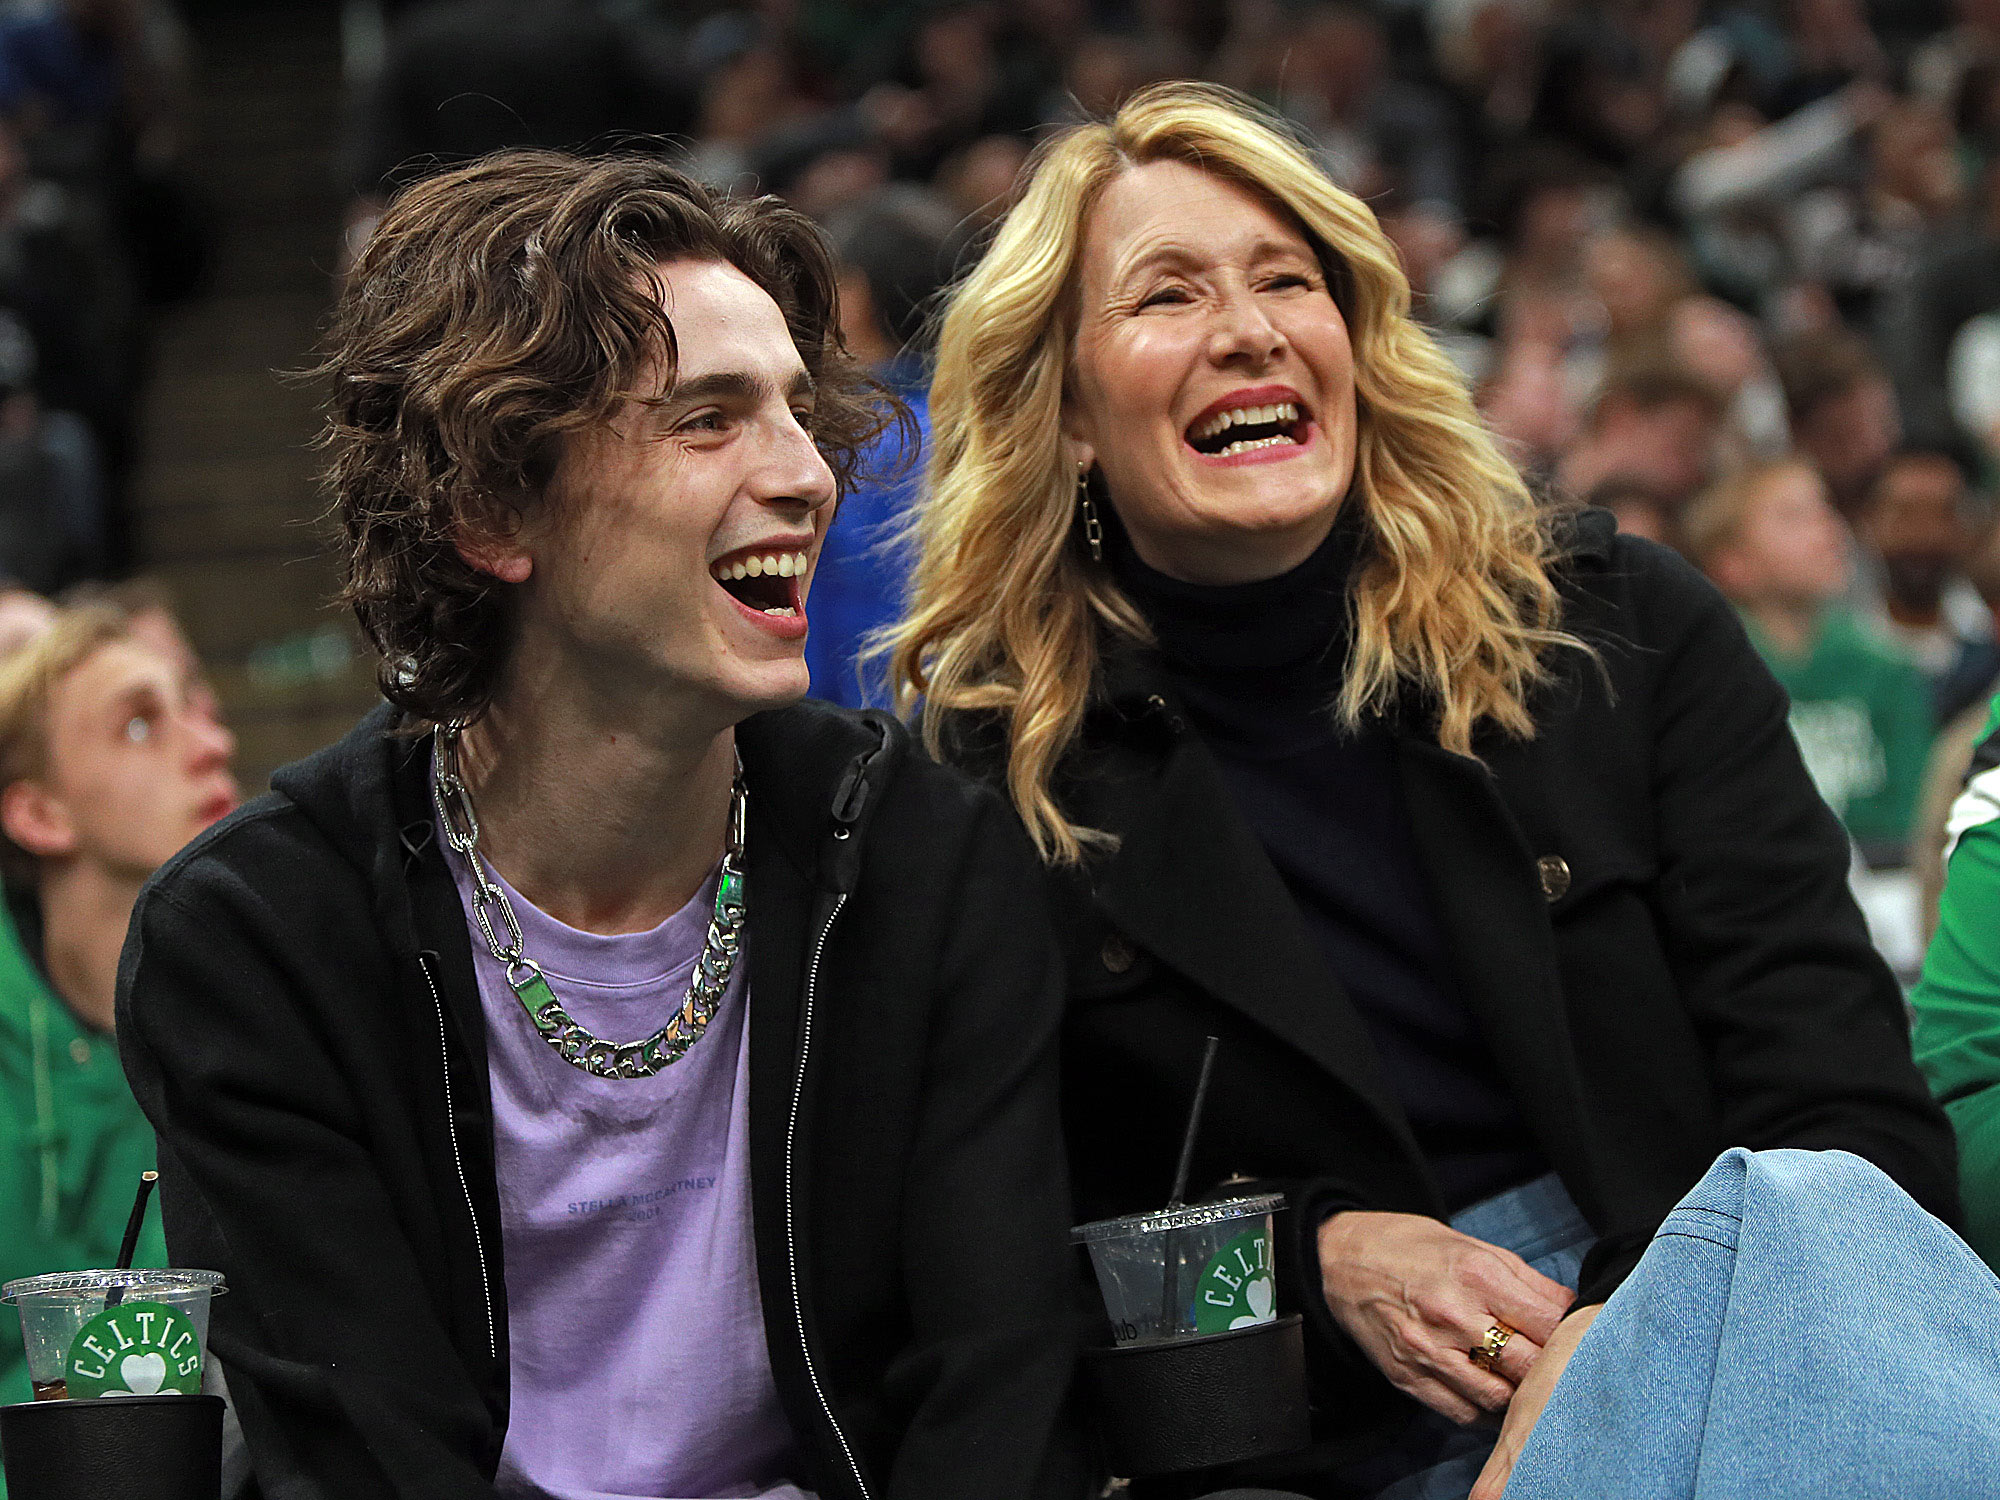 Timothee and Laura Dern